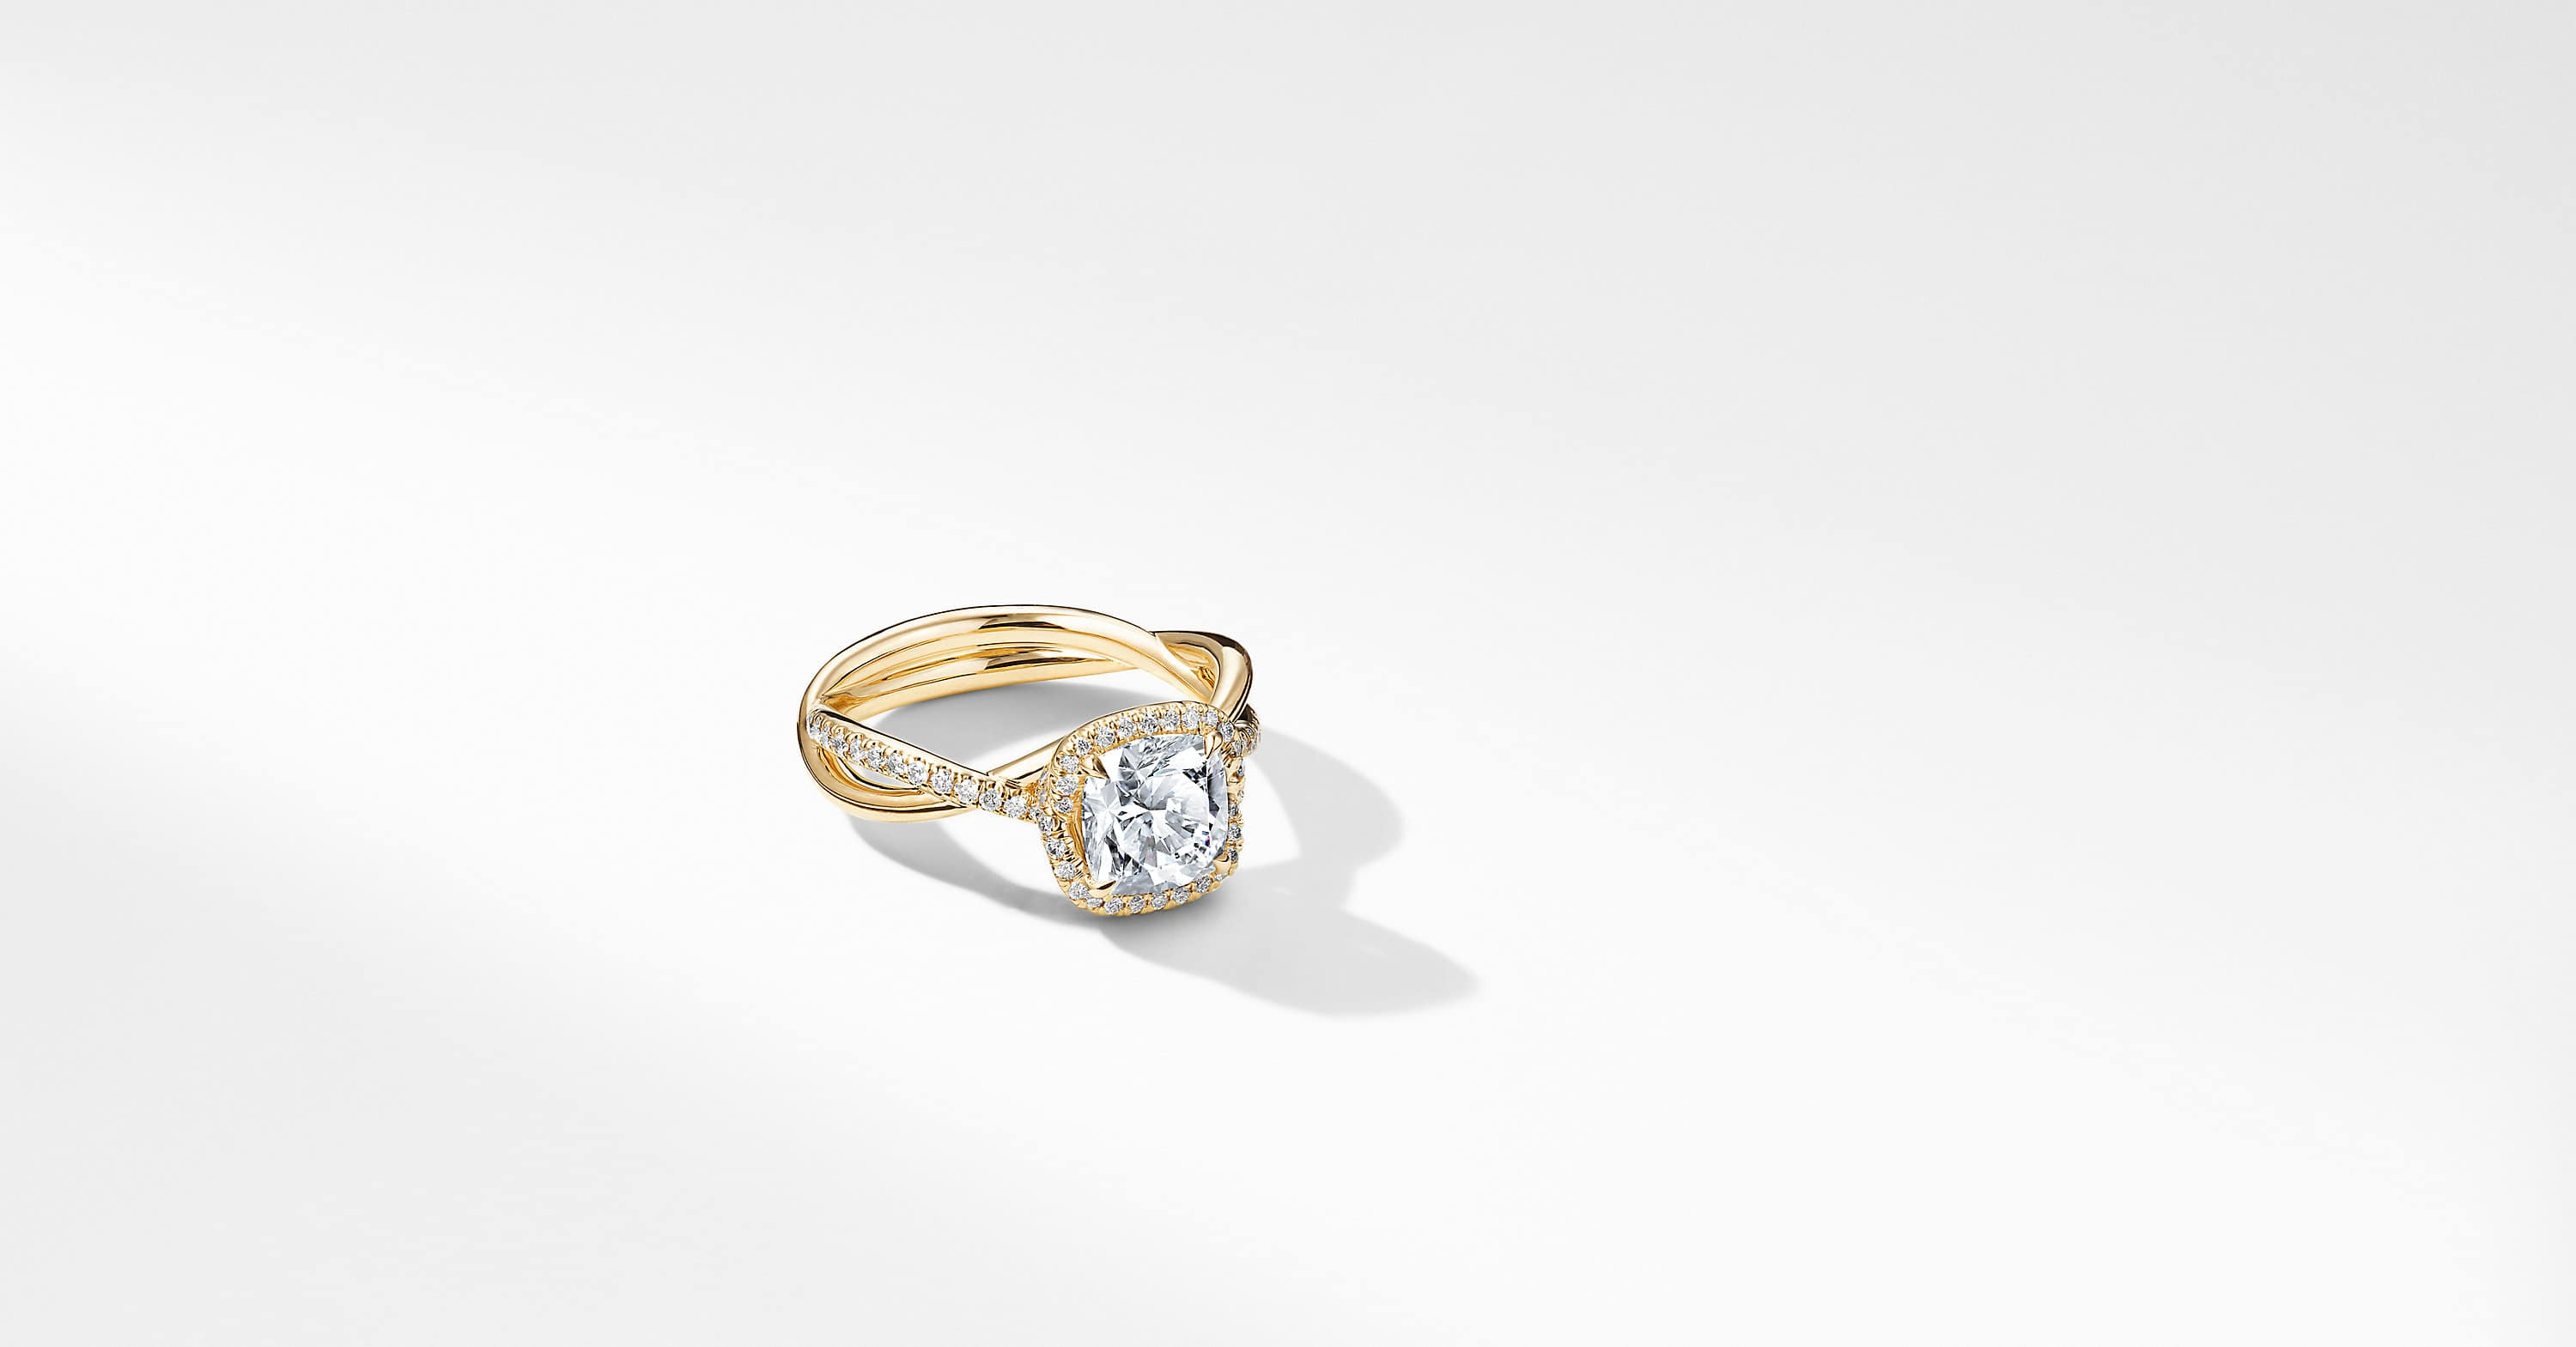 DY Lanai Part Pavé Engagement Ring in 18K Yellow Gold, Cushion